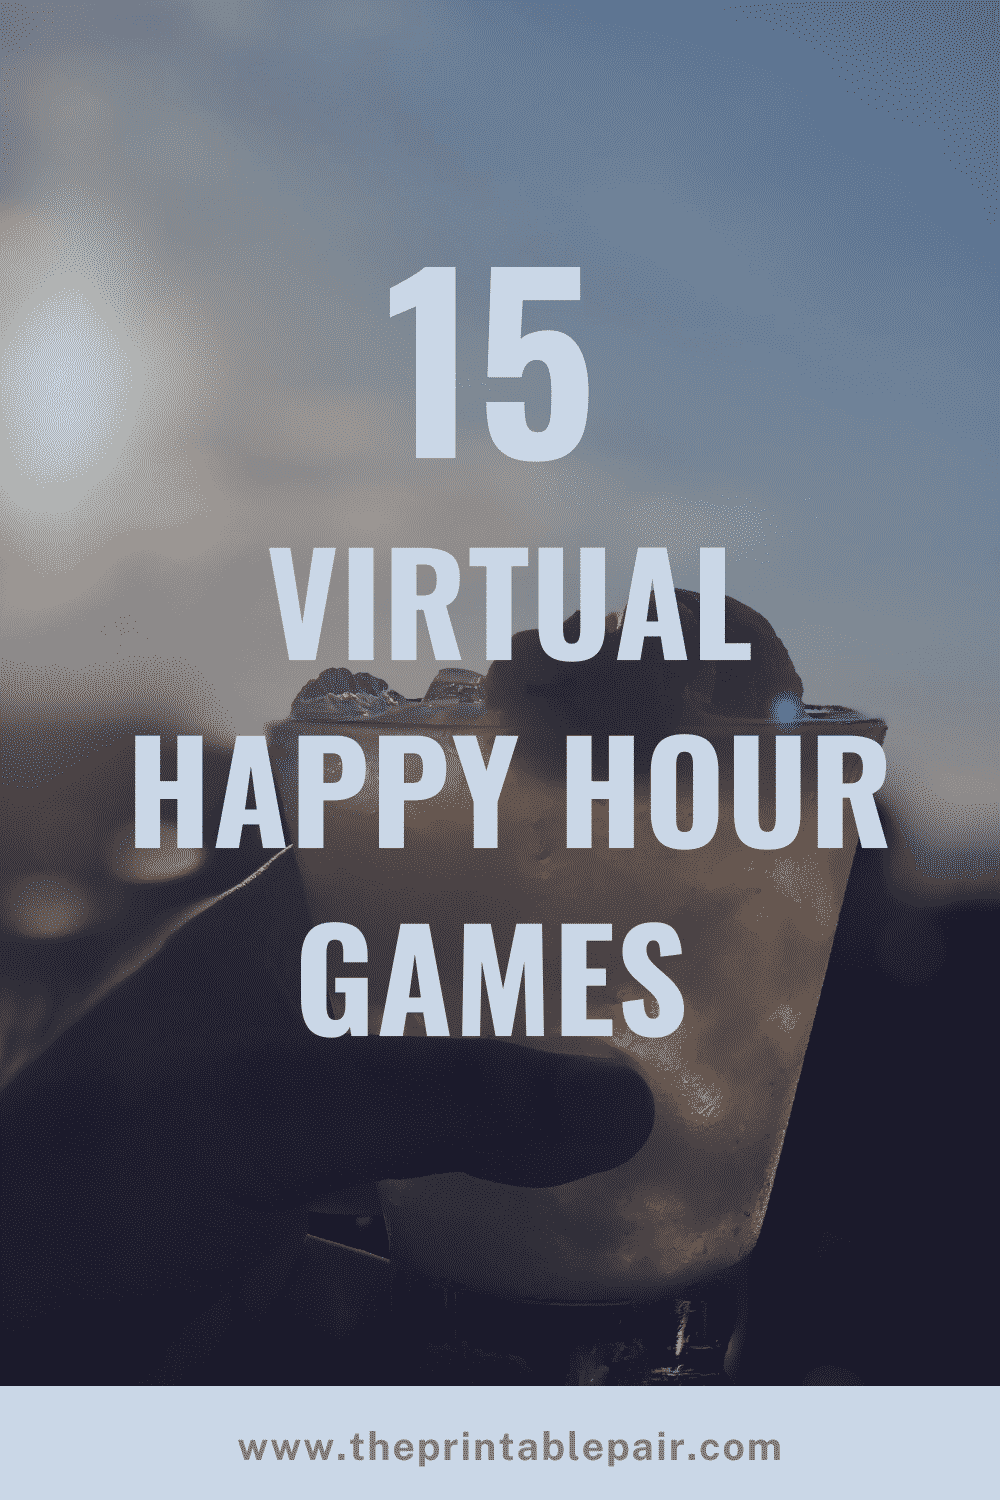 15 Virtual Happy Hour Games Graphic